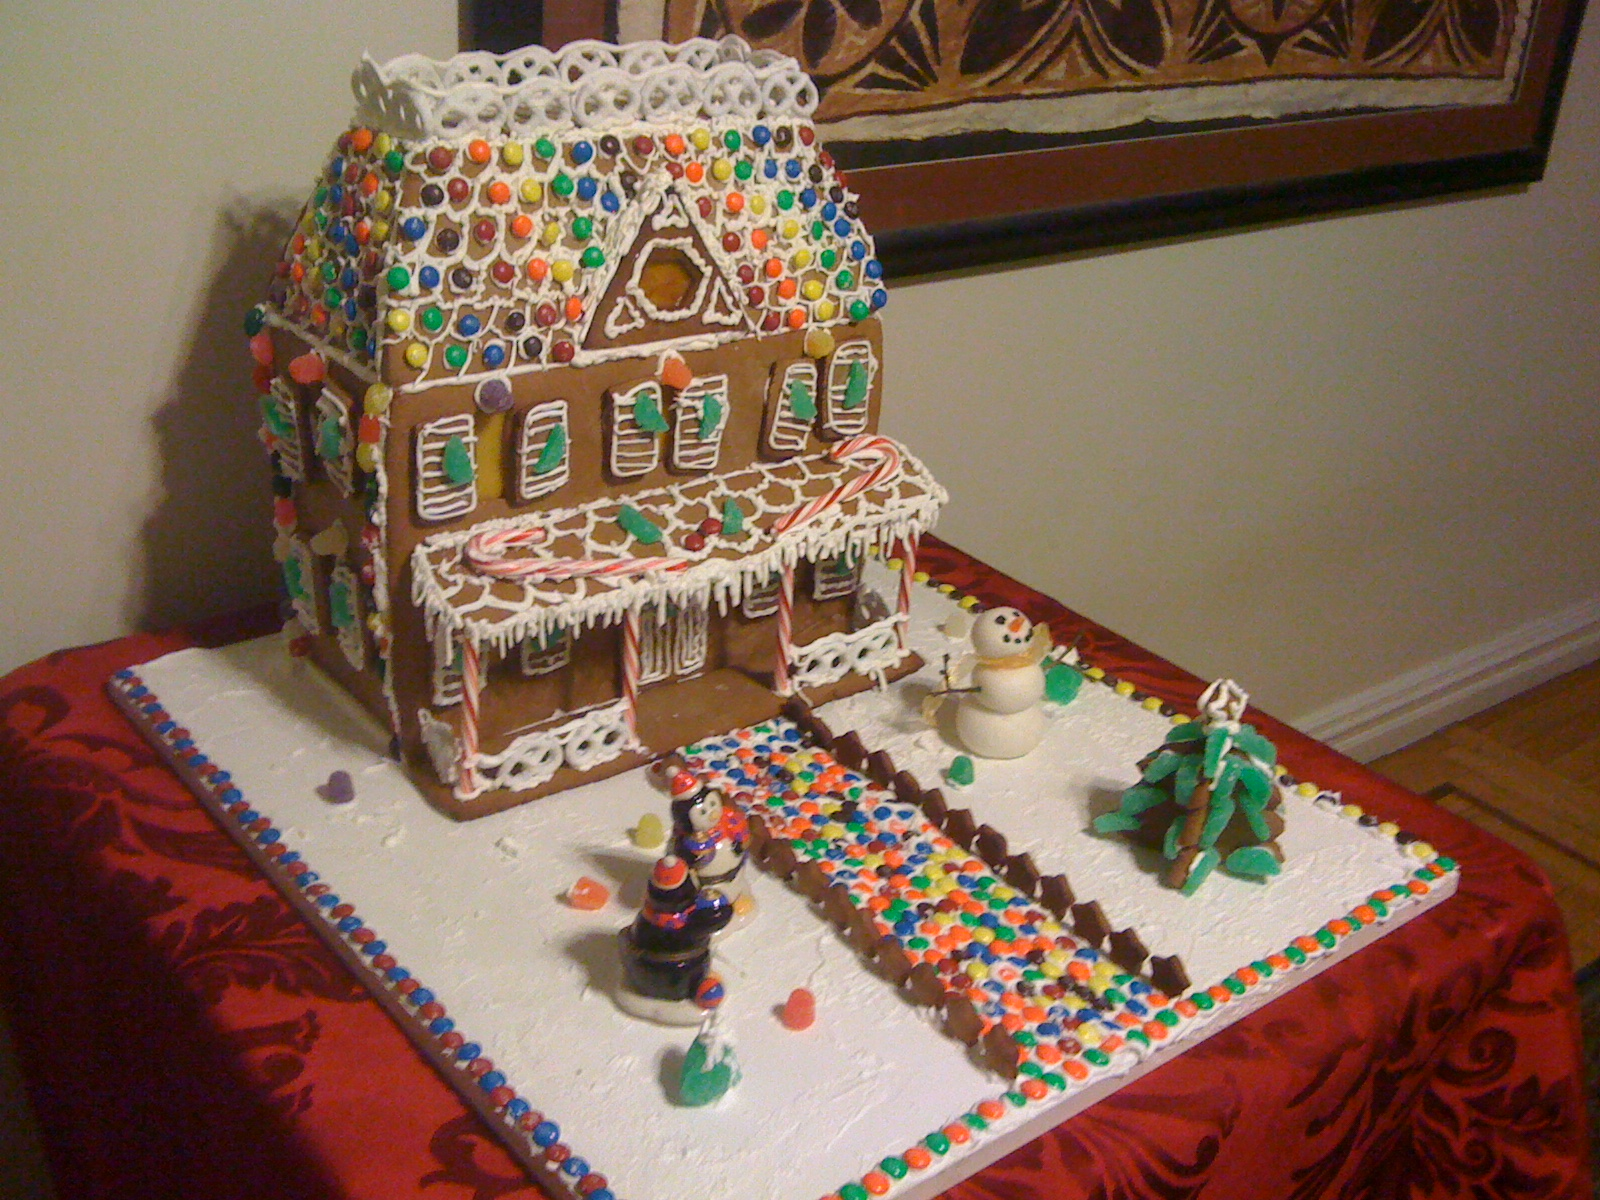 Gingerbread%20house%202011%20003.JPG